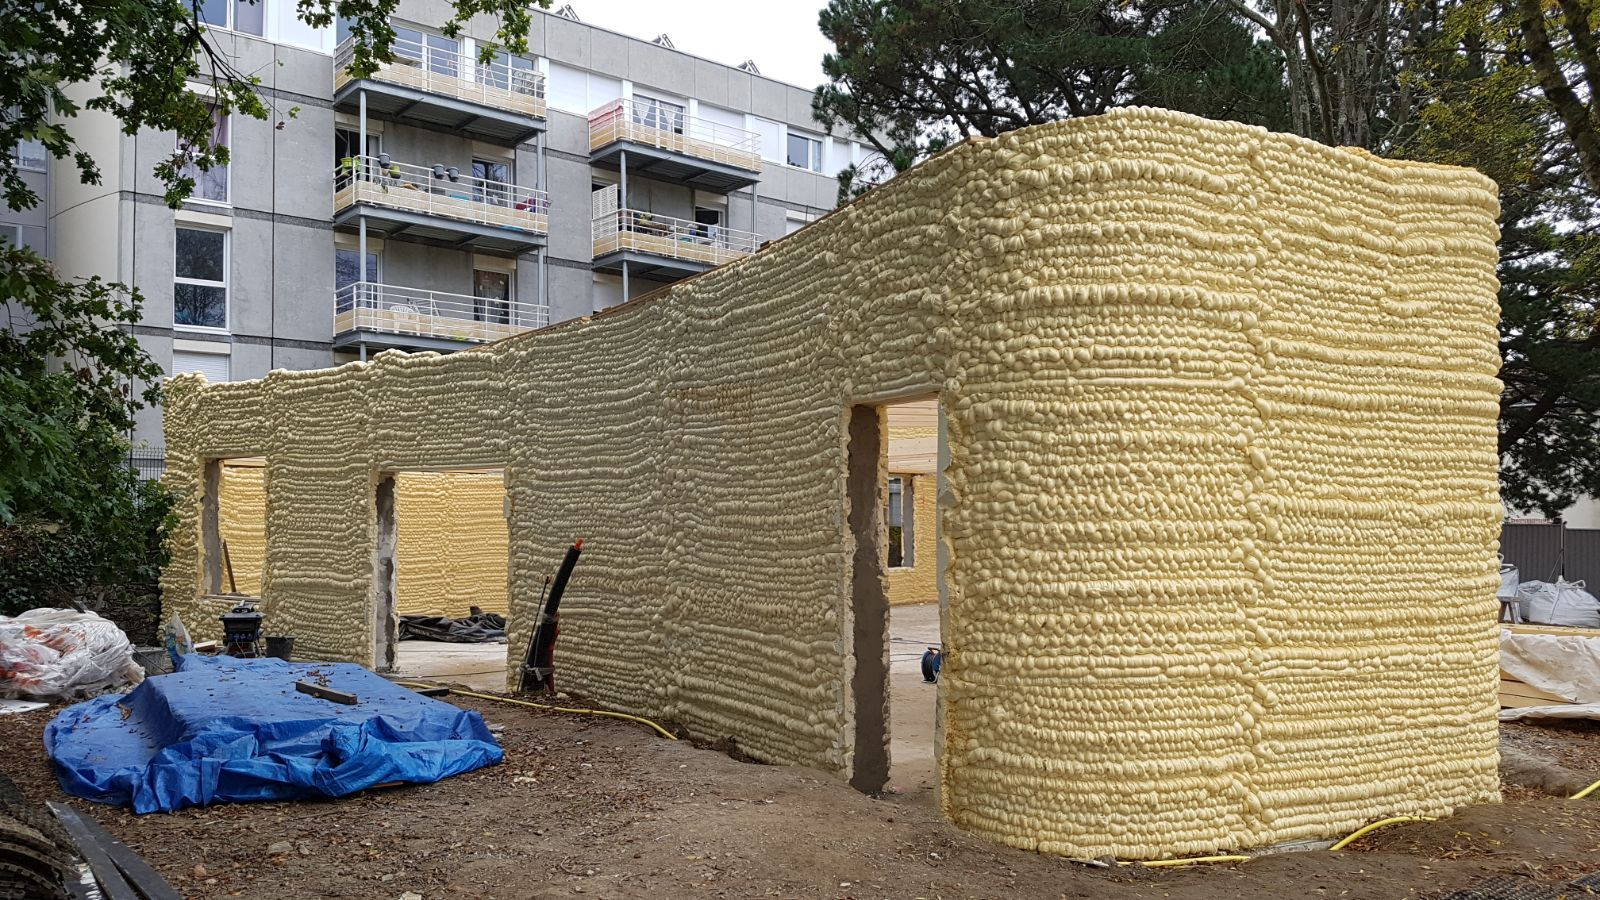 La premi re maison 3d est nantes le bois sa source for Construction maison 3d nantes